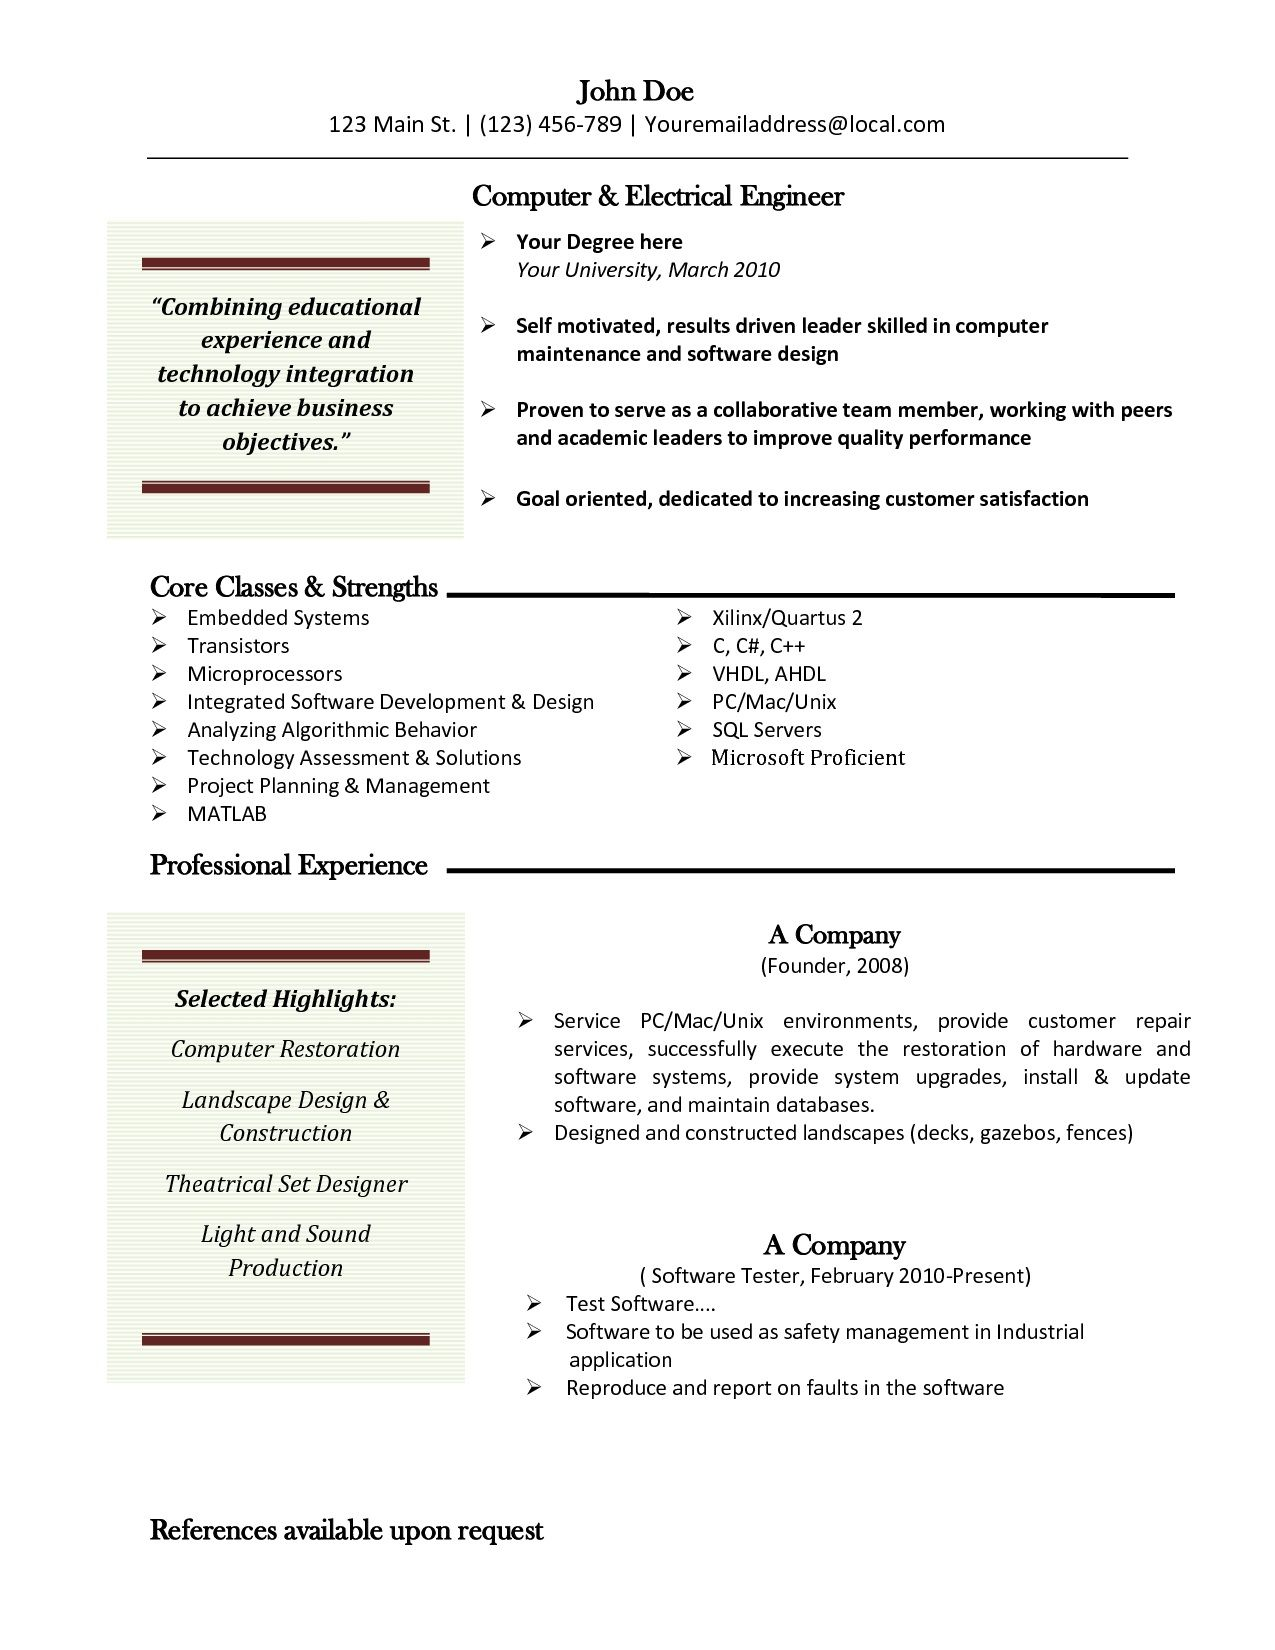 Resume Templates For Mac  HttpJobresumesampleComResume